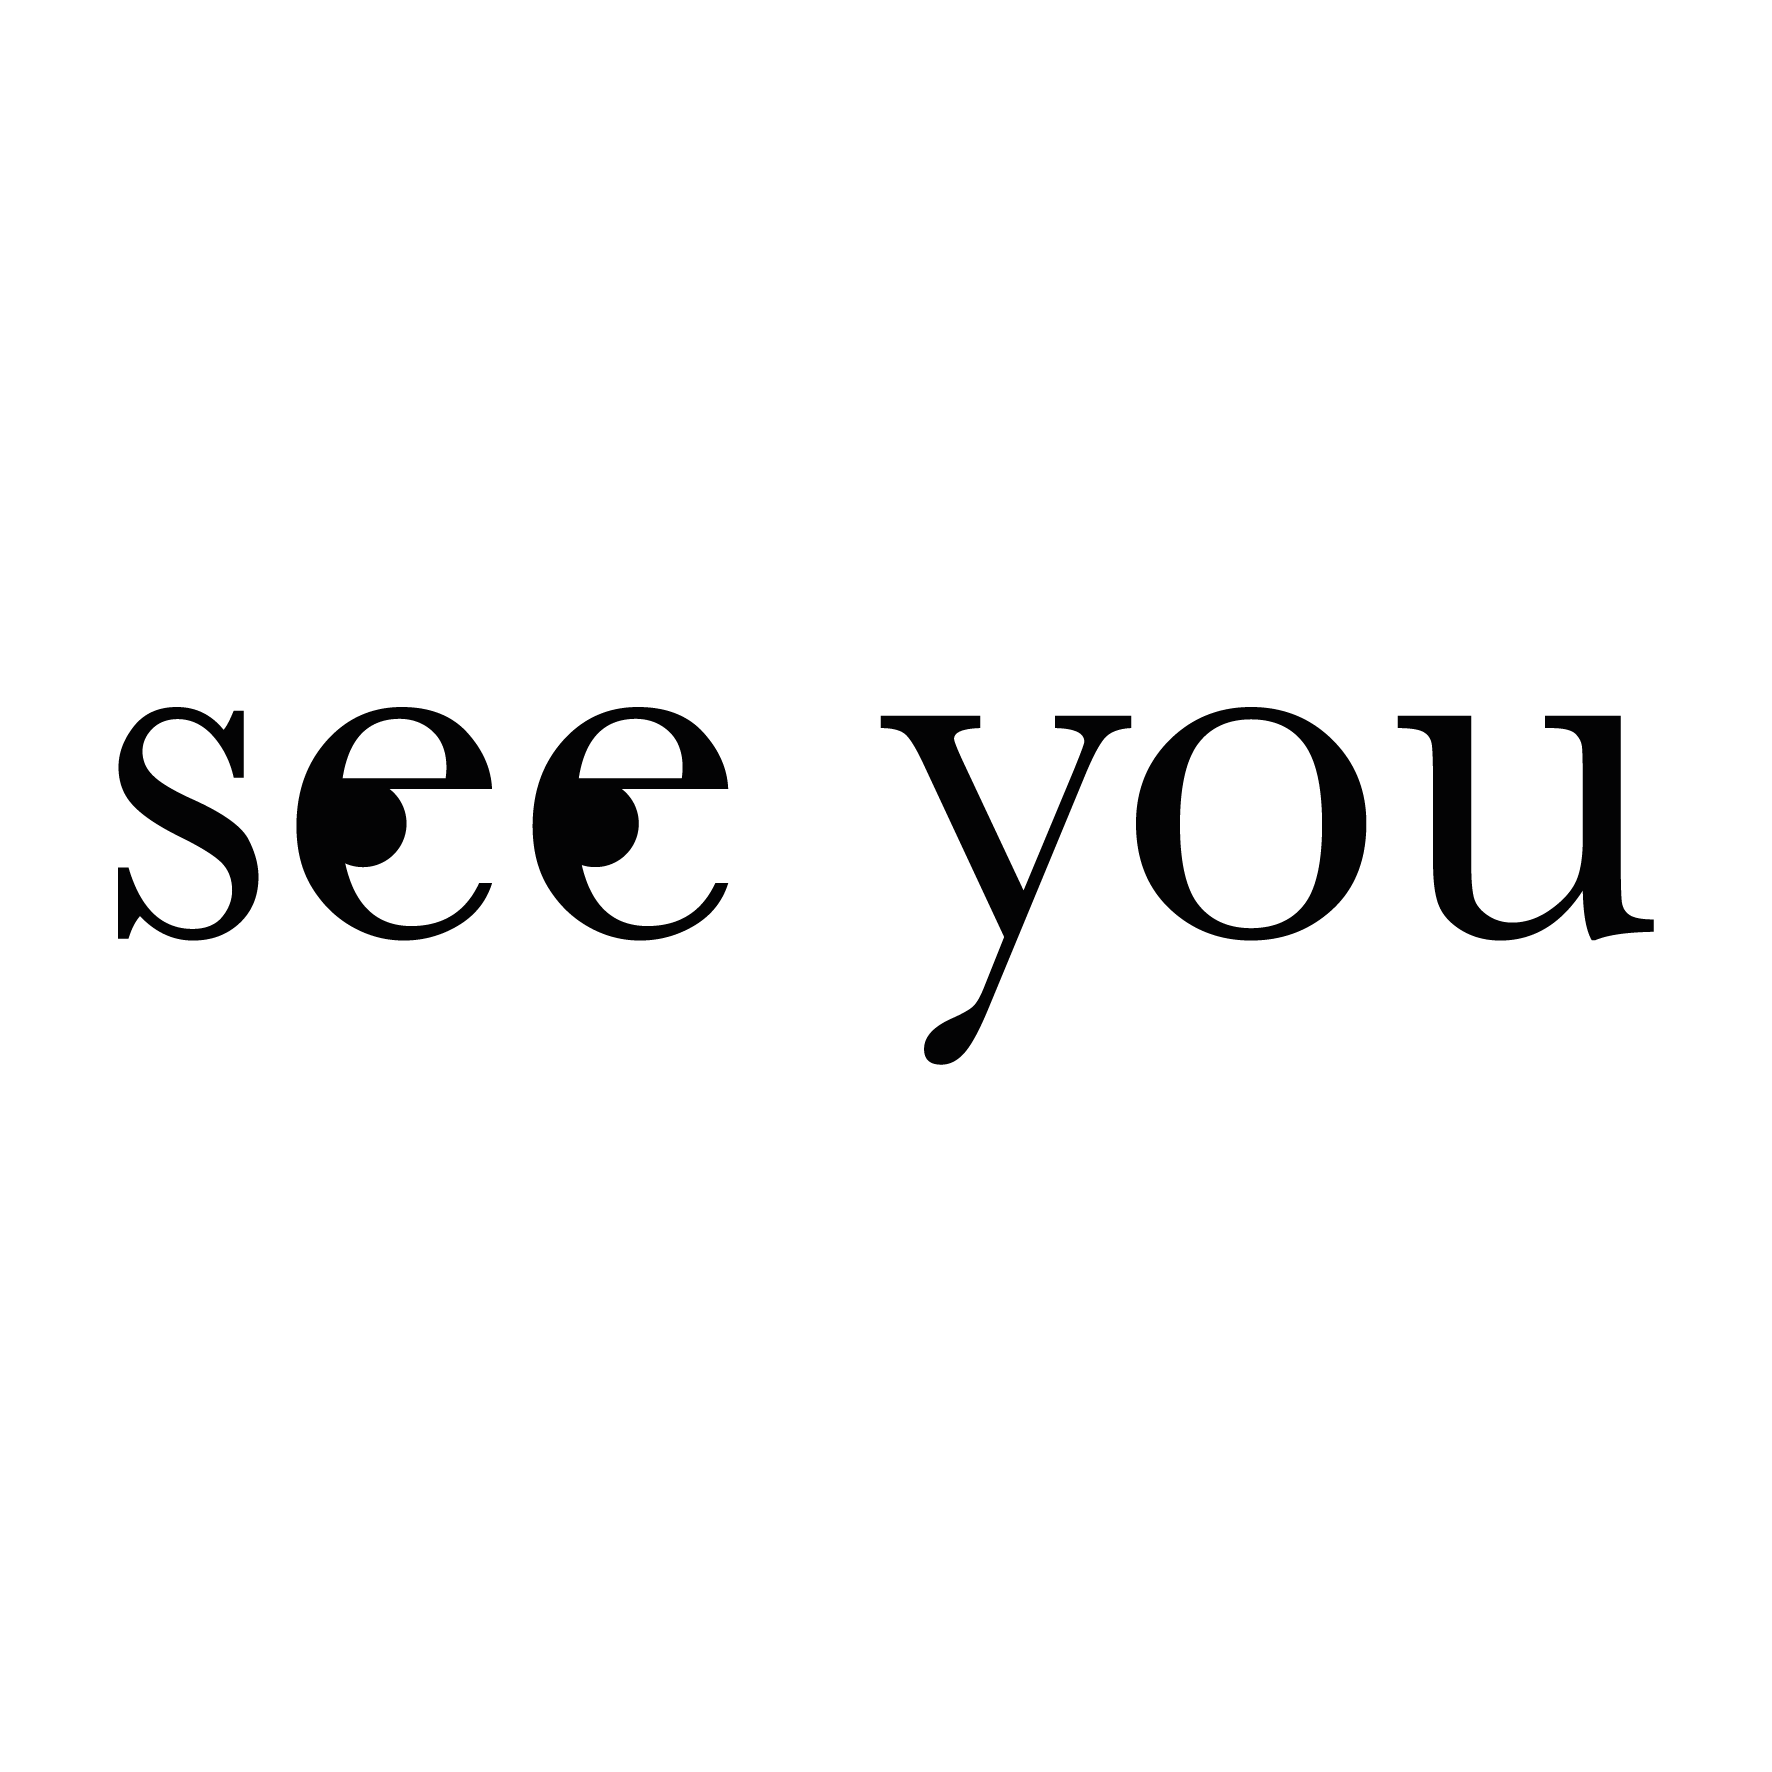 see-you-texte